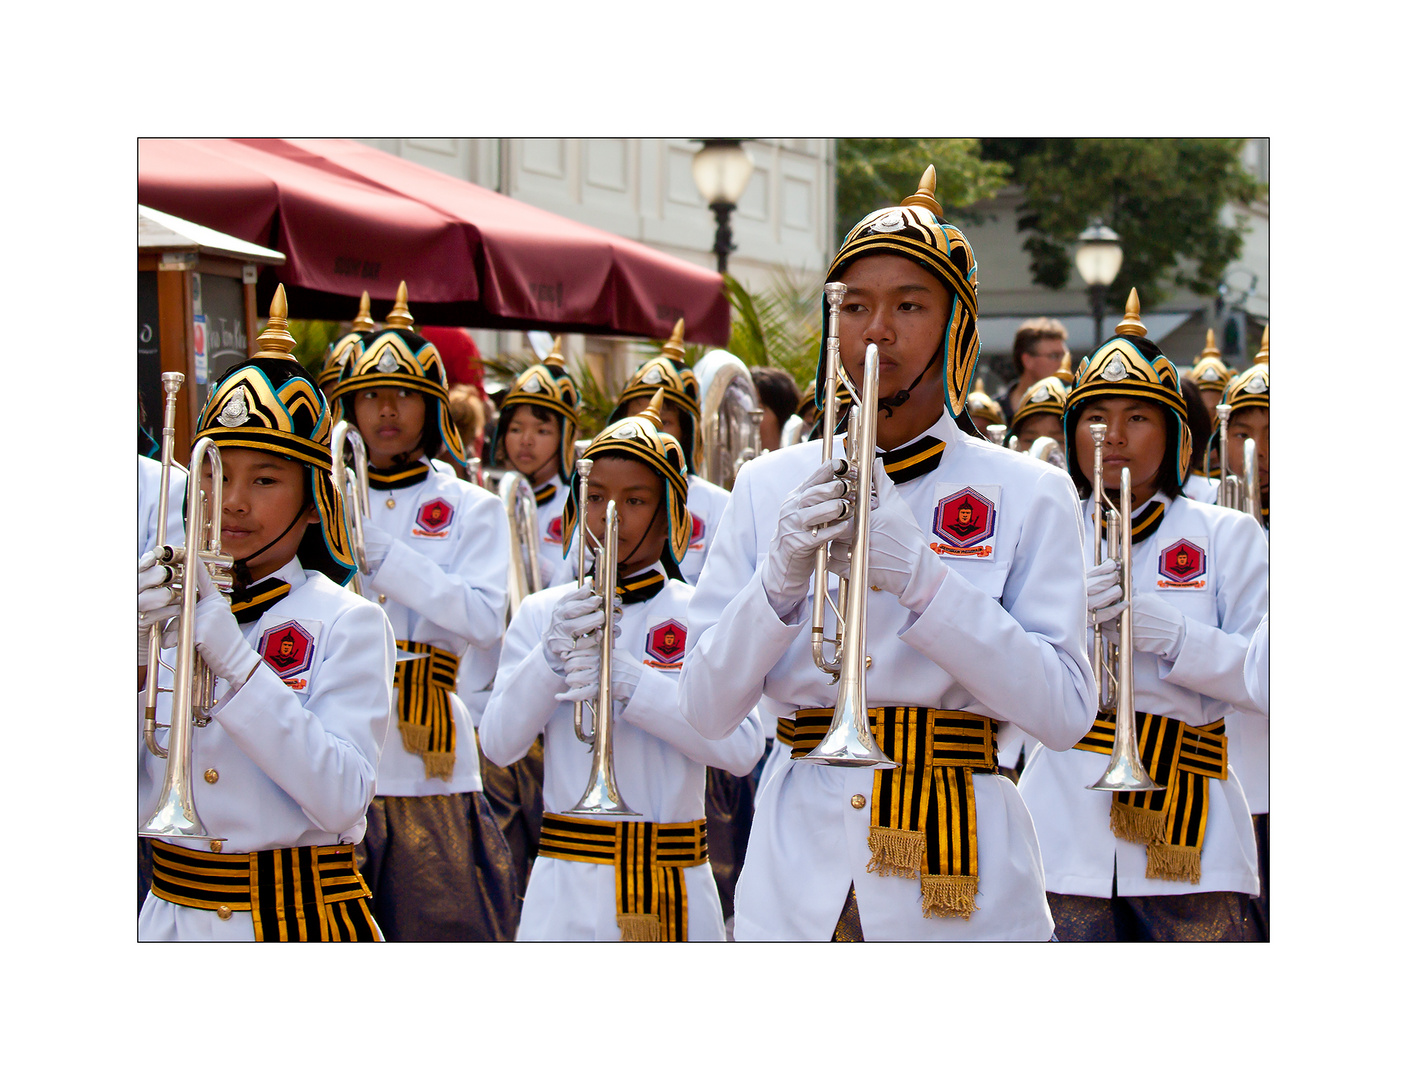 Marching Bands IV